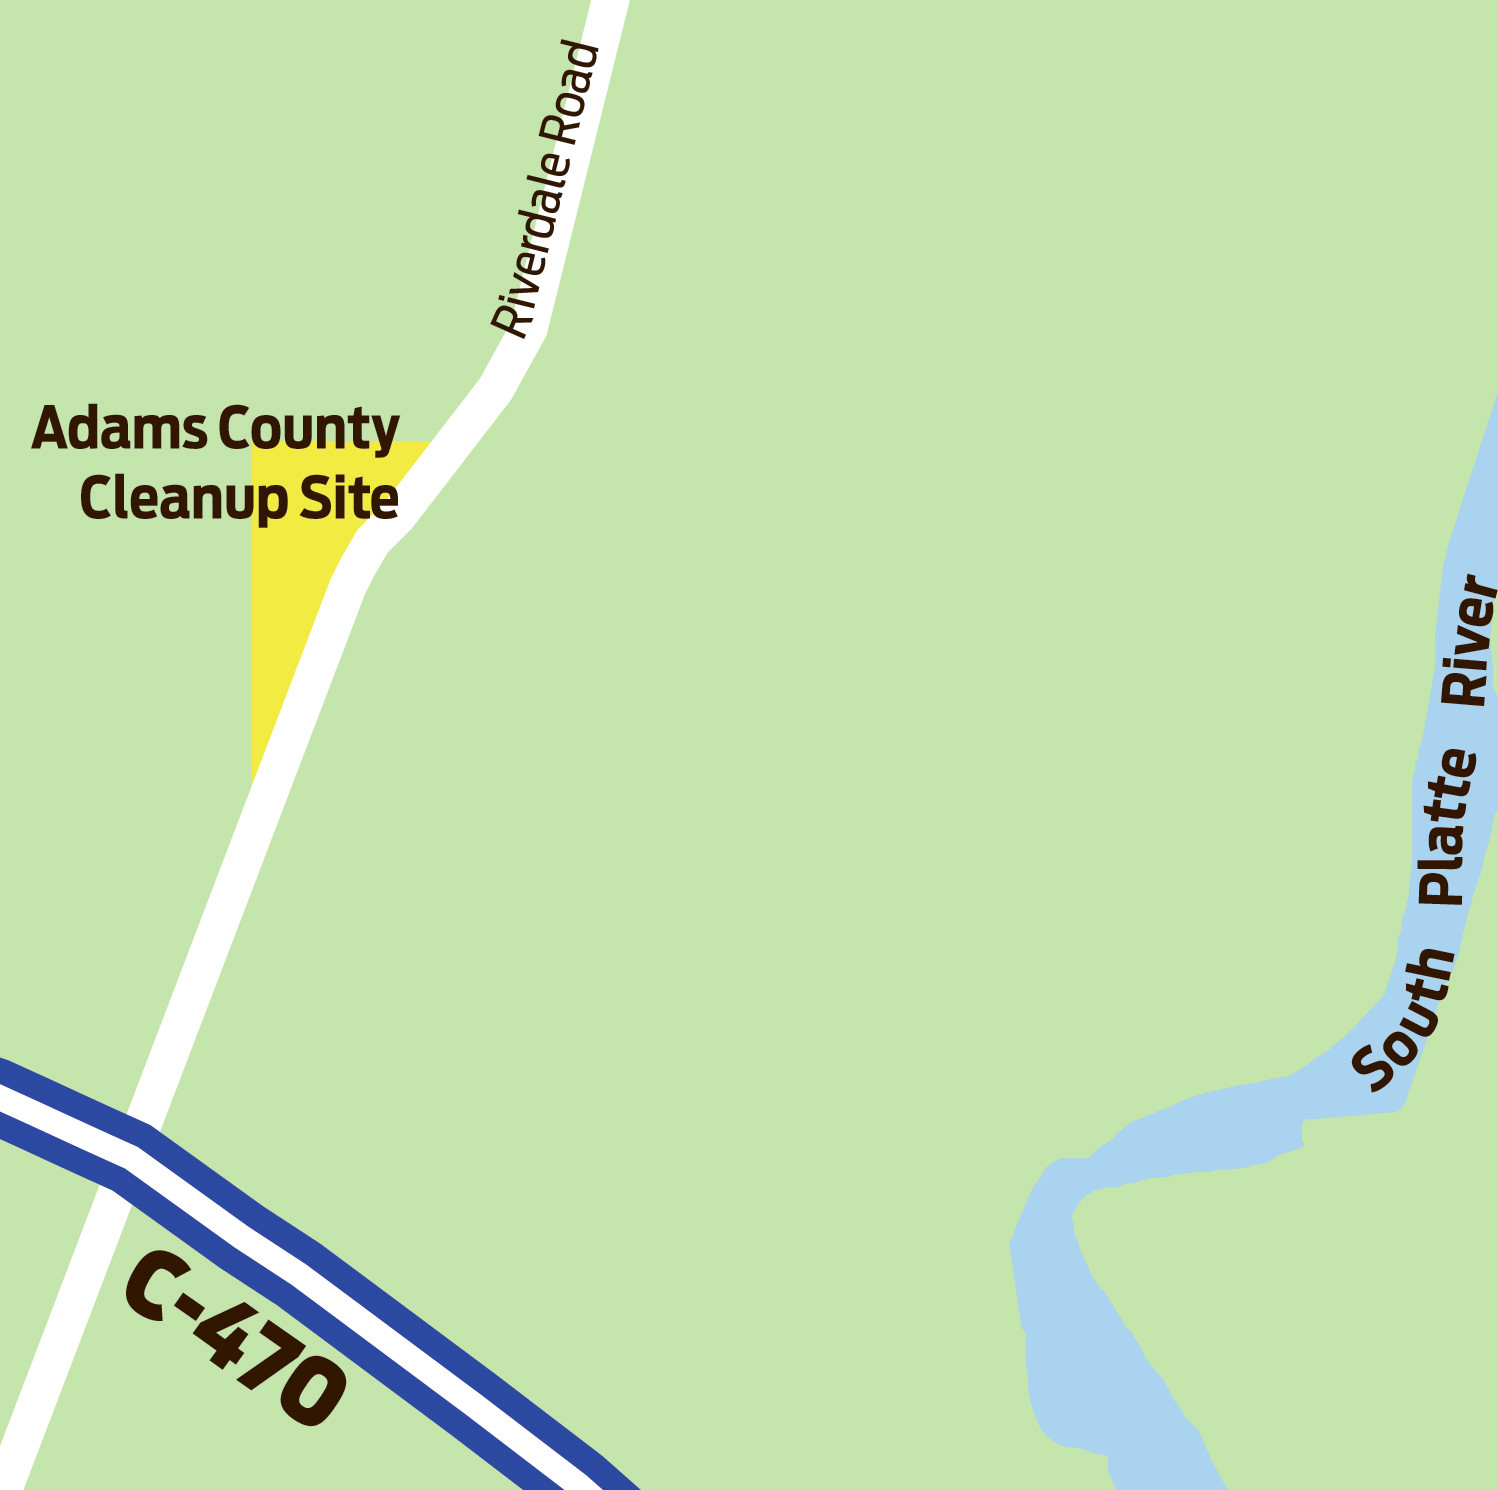 Expensive Clean-up Considered At Old Adams County Shooting